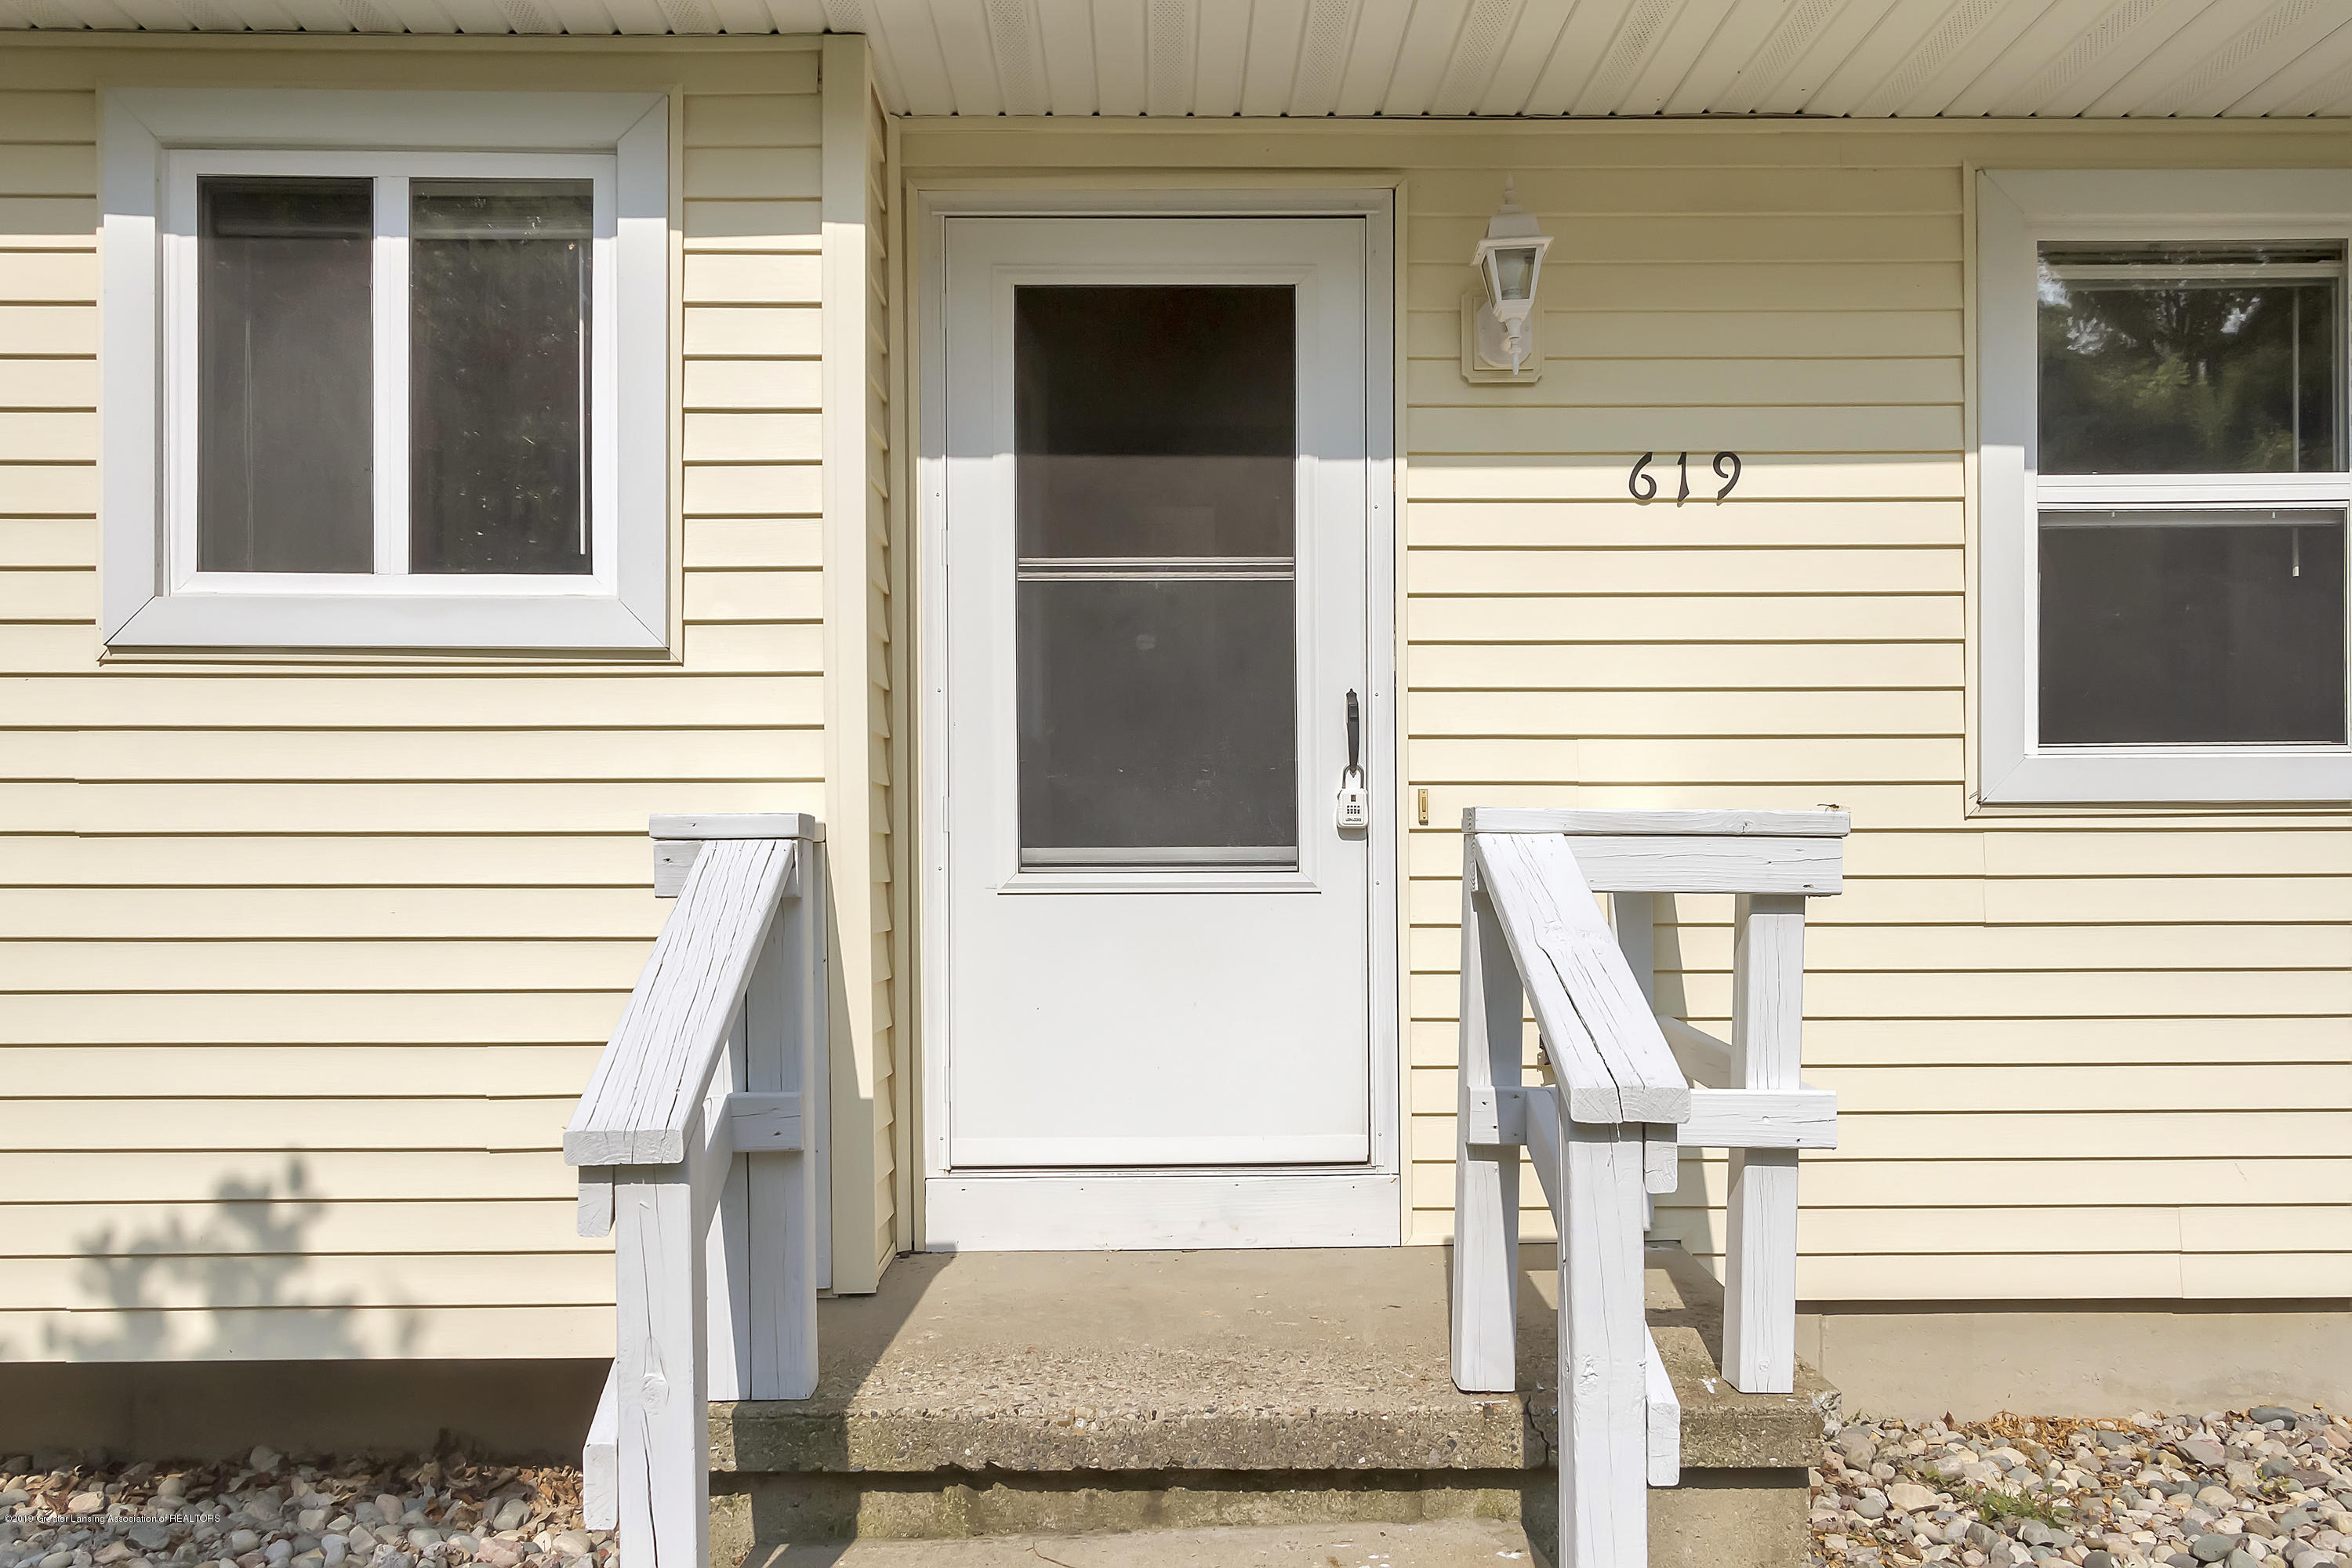 619 Forest St - 619-Forest-St-Charlotte-Mi-48113-windows - 5